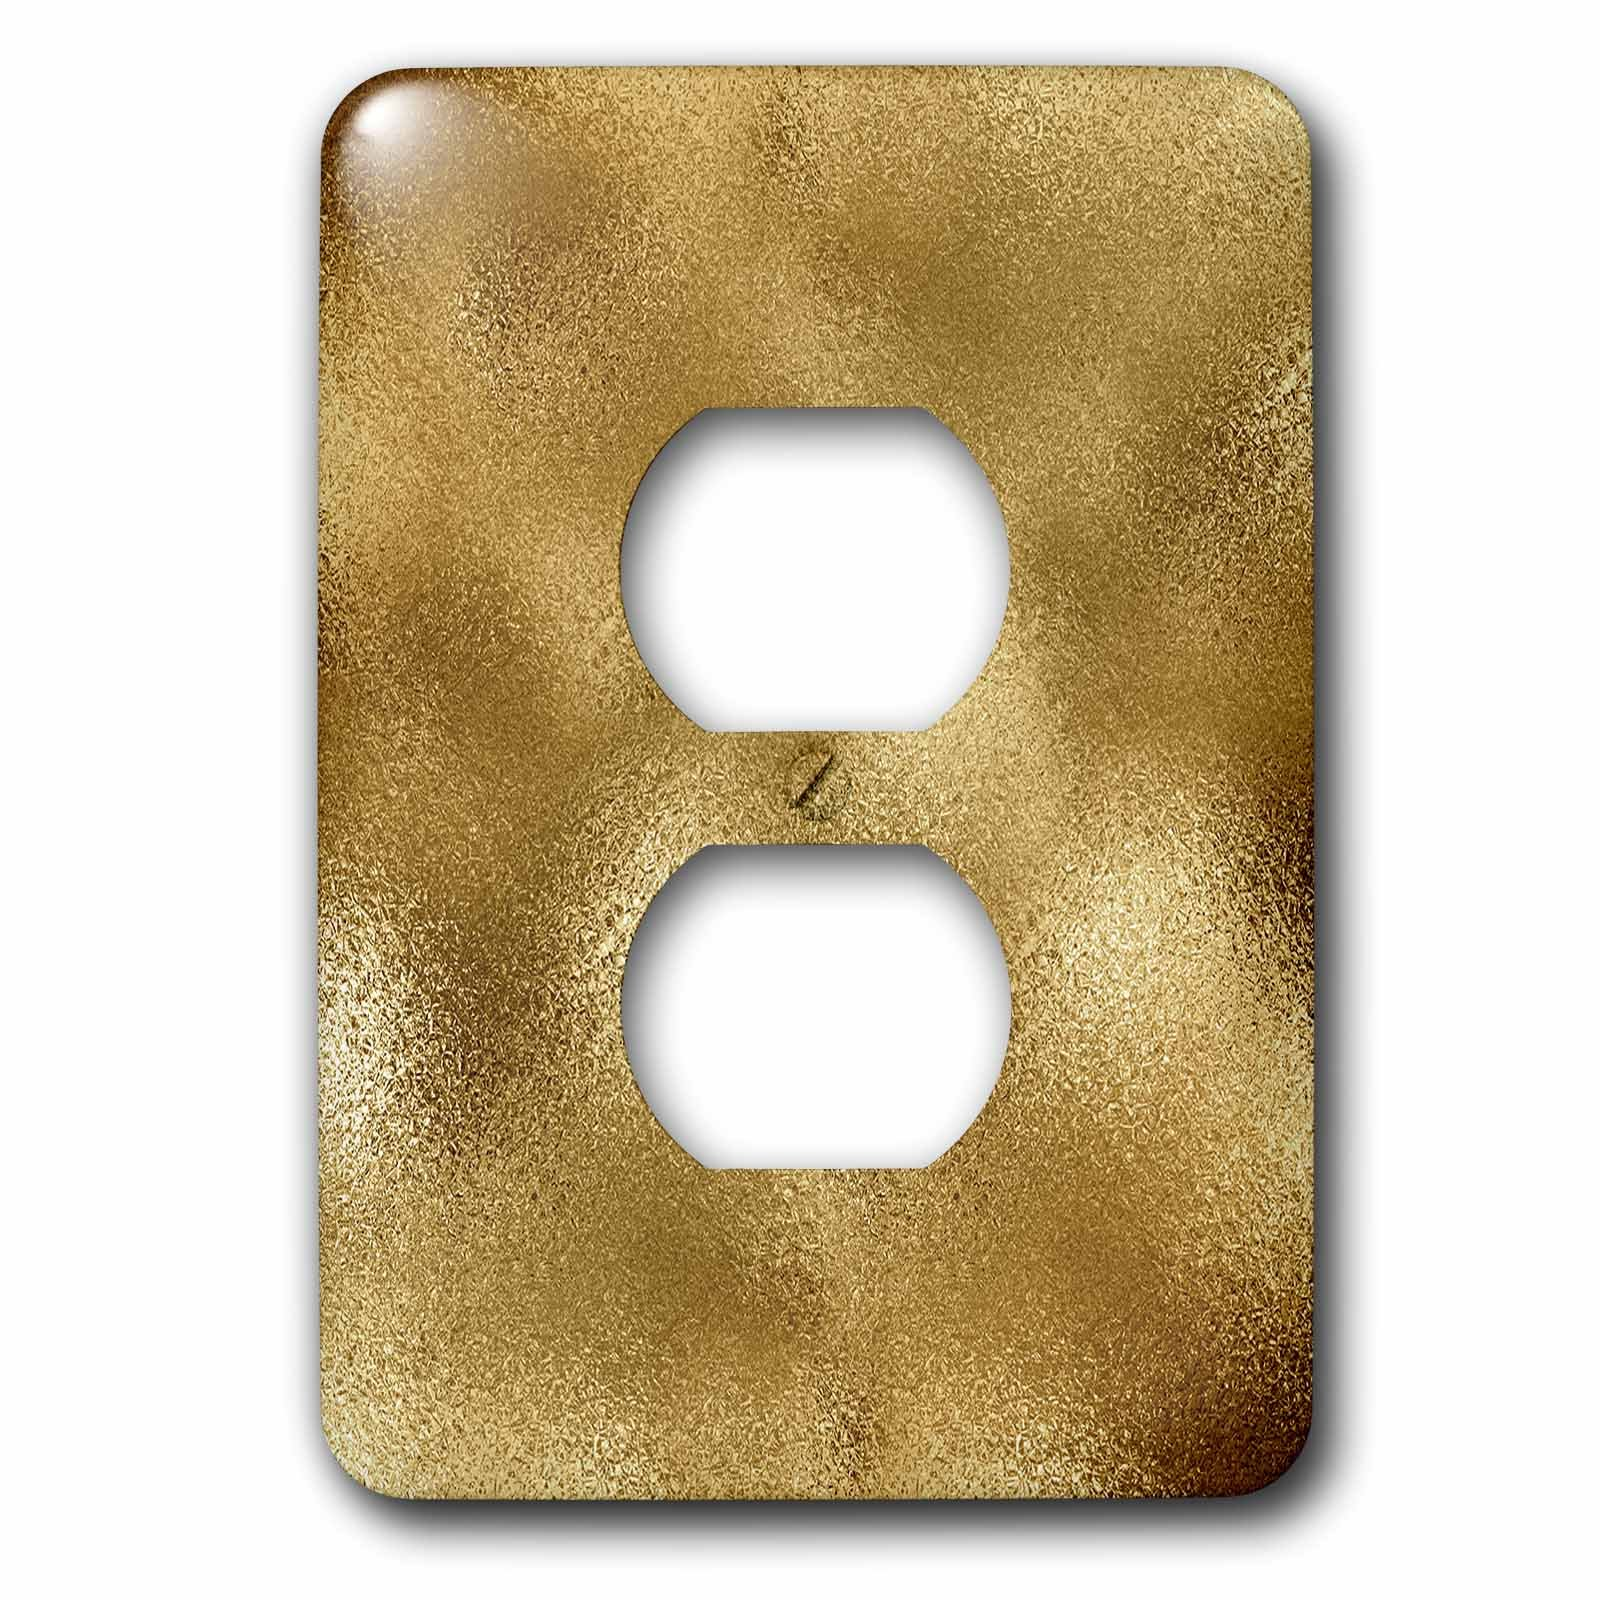 3dRose Uta Naumann Pattern - Luxury Gold Metal Foil Background - Light Switch Covers - 2 plug outlet cover (lsp_263080_6)